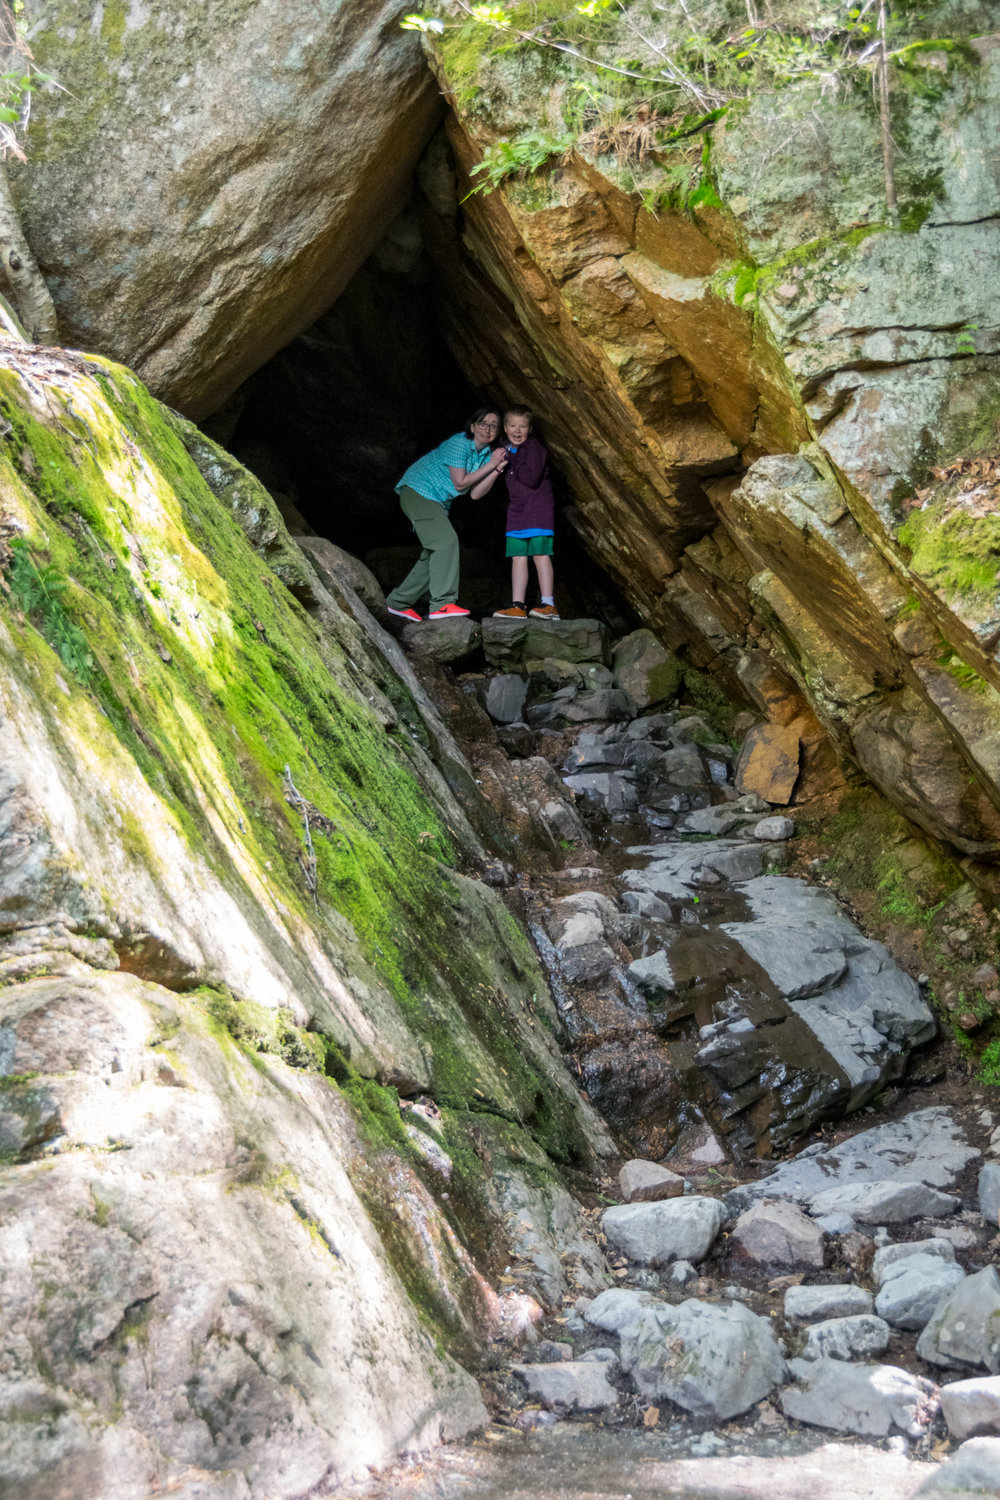 The Bear Cave - Sinéad and Andy climbed into the bear cave and then got worried about what might be lurking in the shadows.